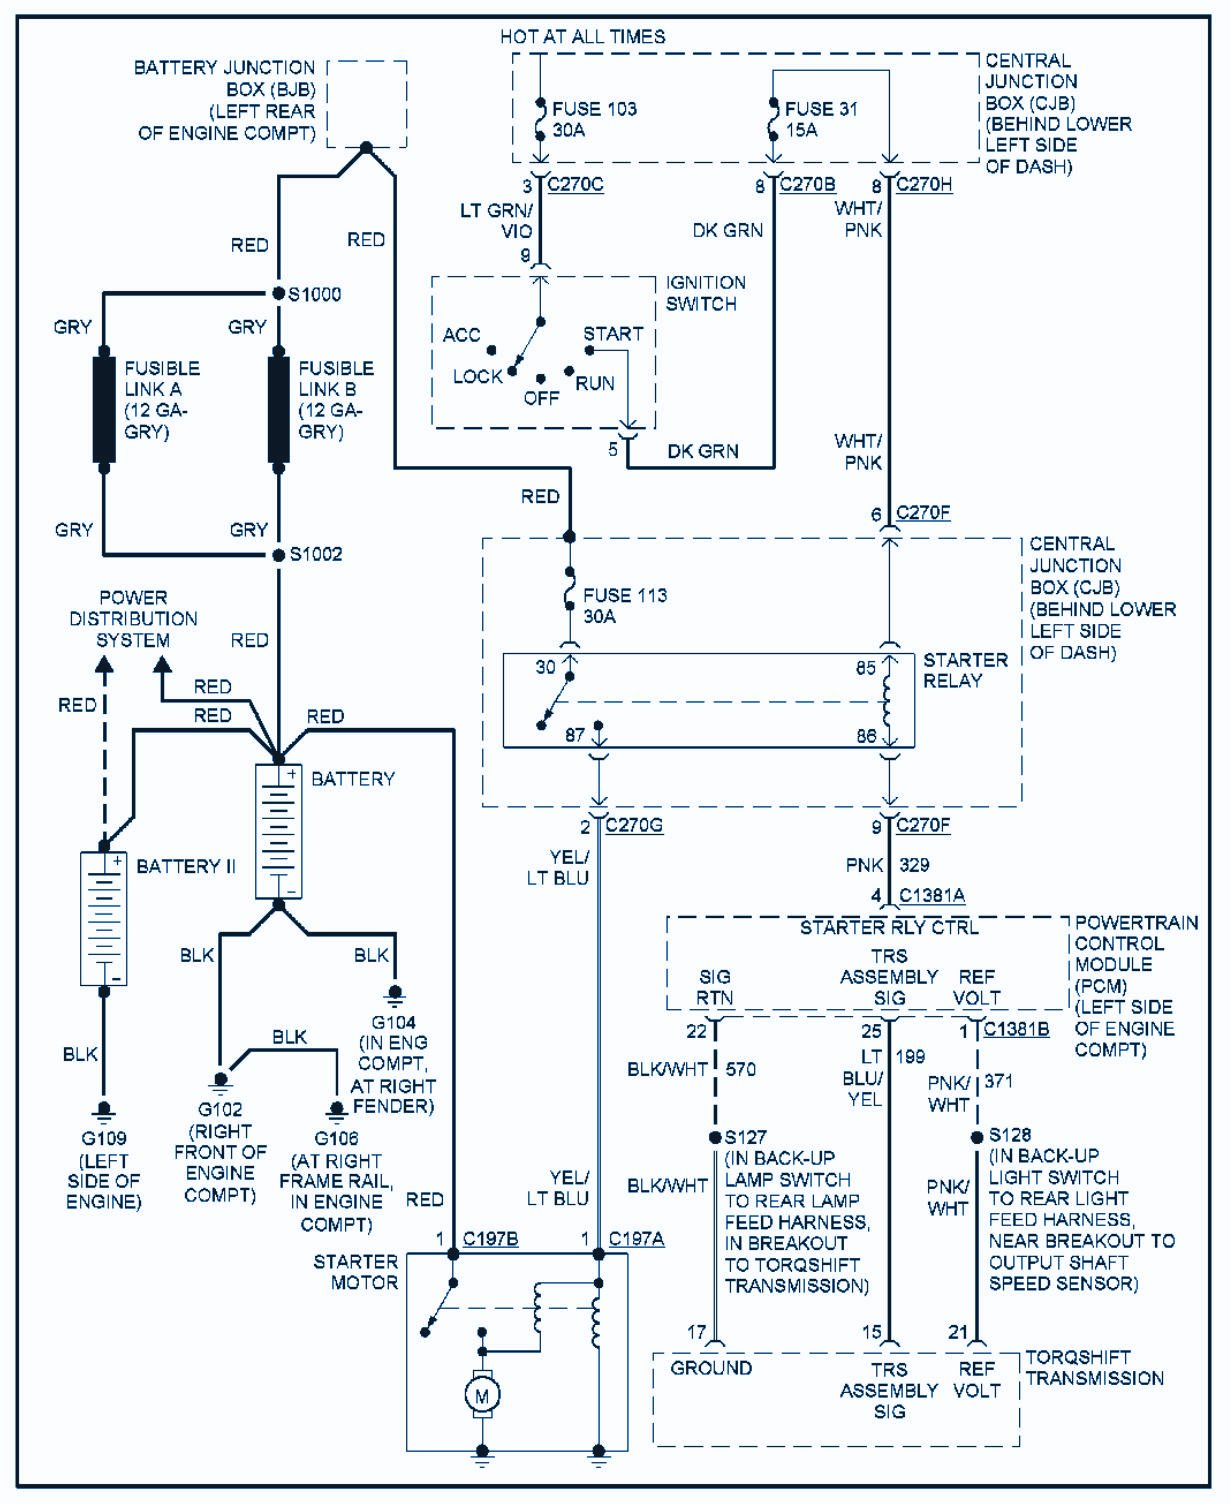 2008 F350 Wiring Diagram - Wiring Diagram •